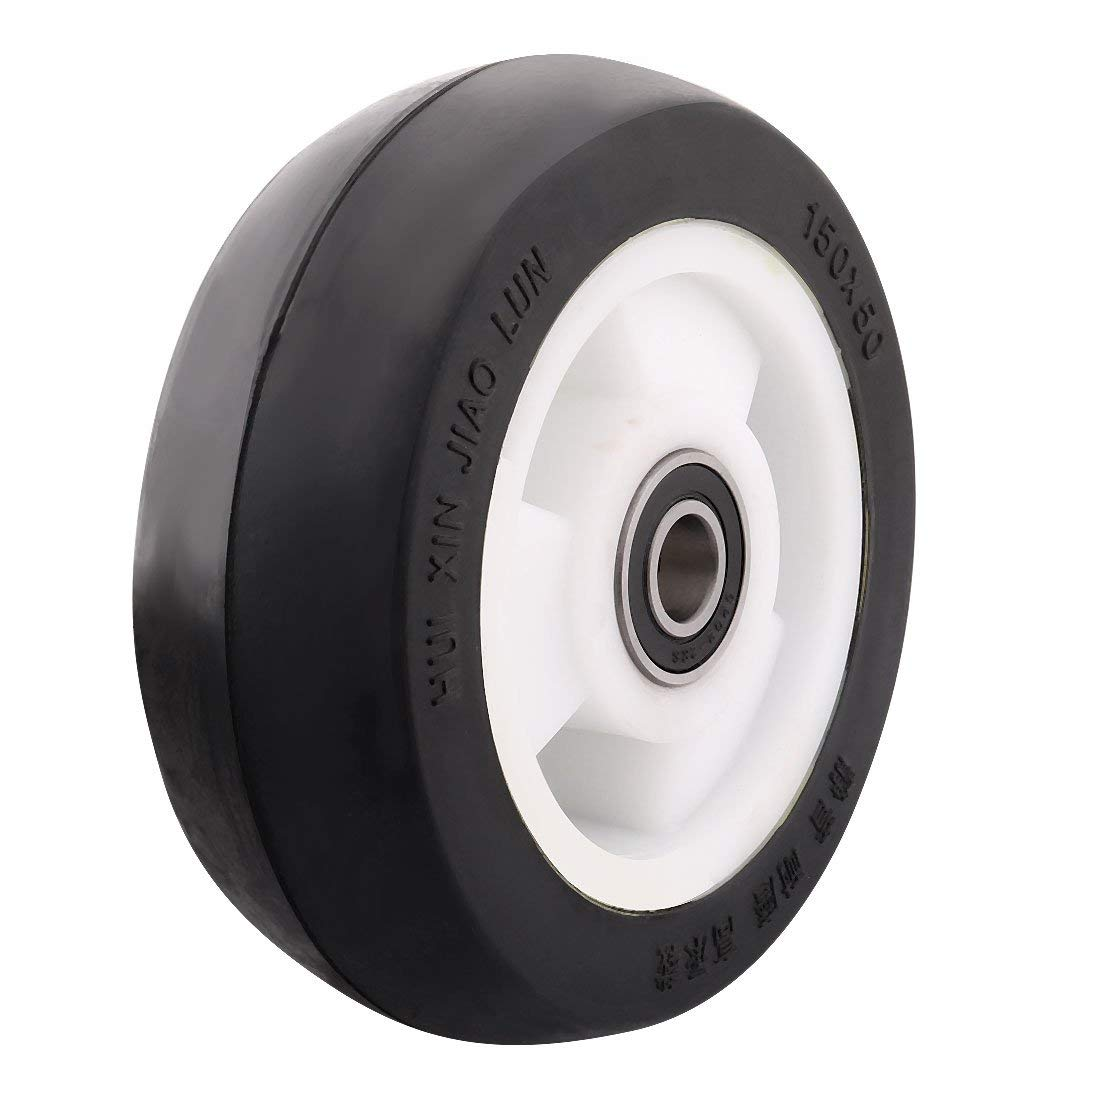 "uxcell 6"" Rubber Wheel for Casters Wheel with Bushing, Bearing and Plastic Washer, Not to Hurt the Ground, Heavy Home Factory Shopping Cart Hand Trolley Replacement"